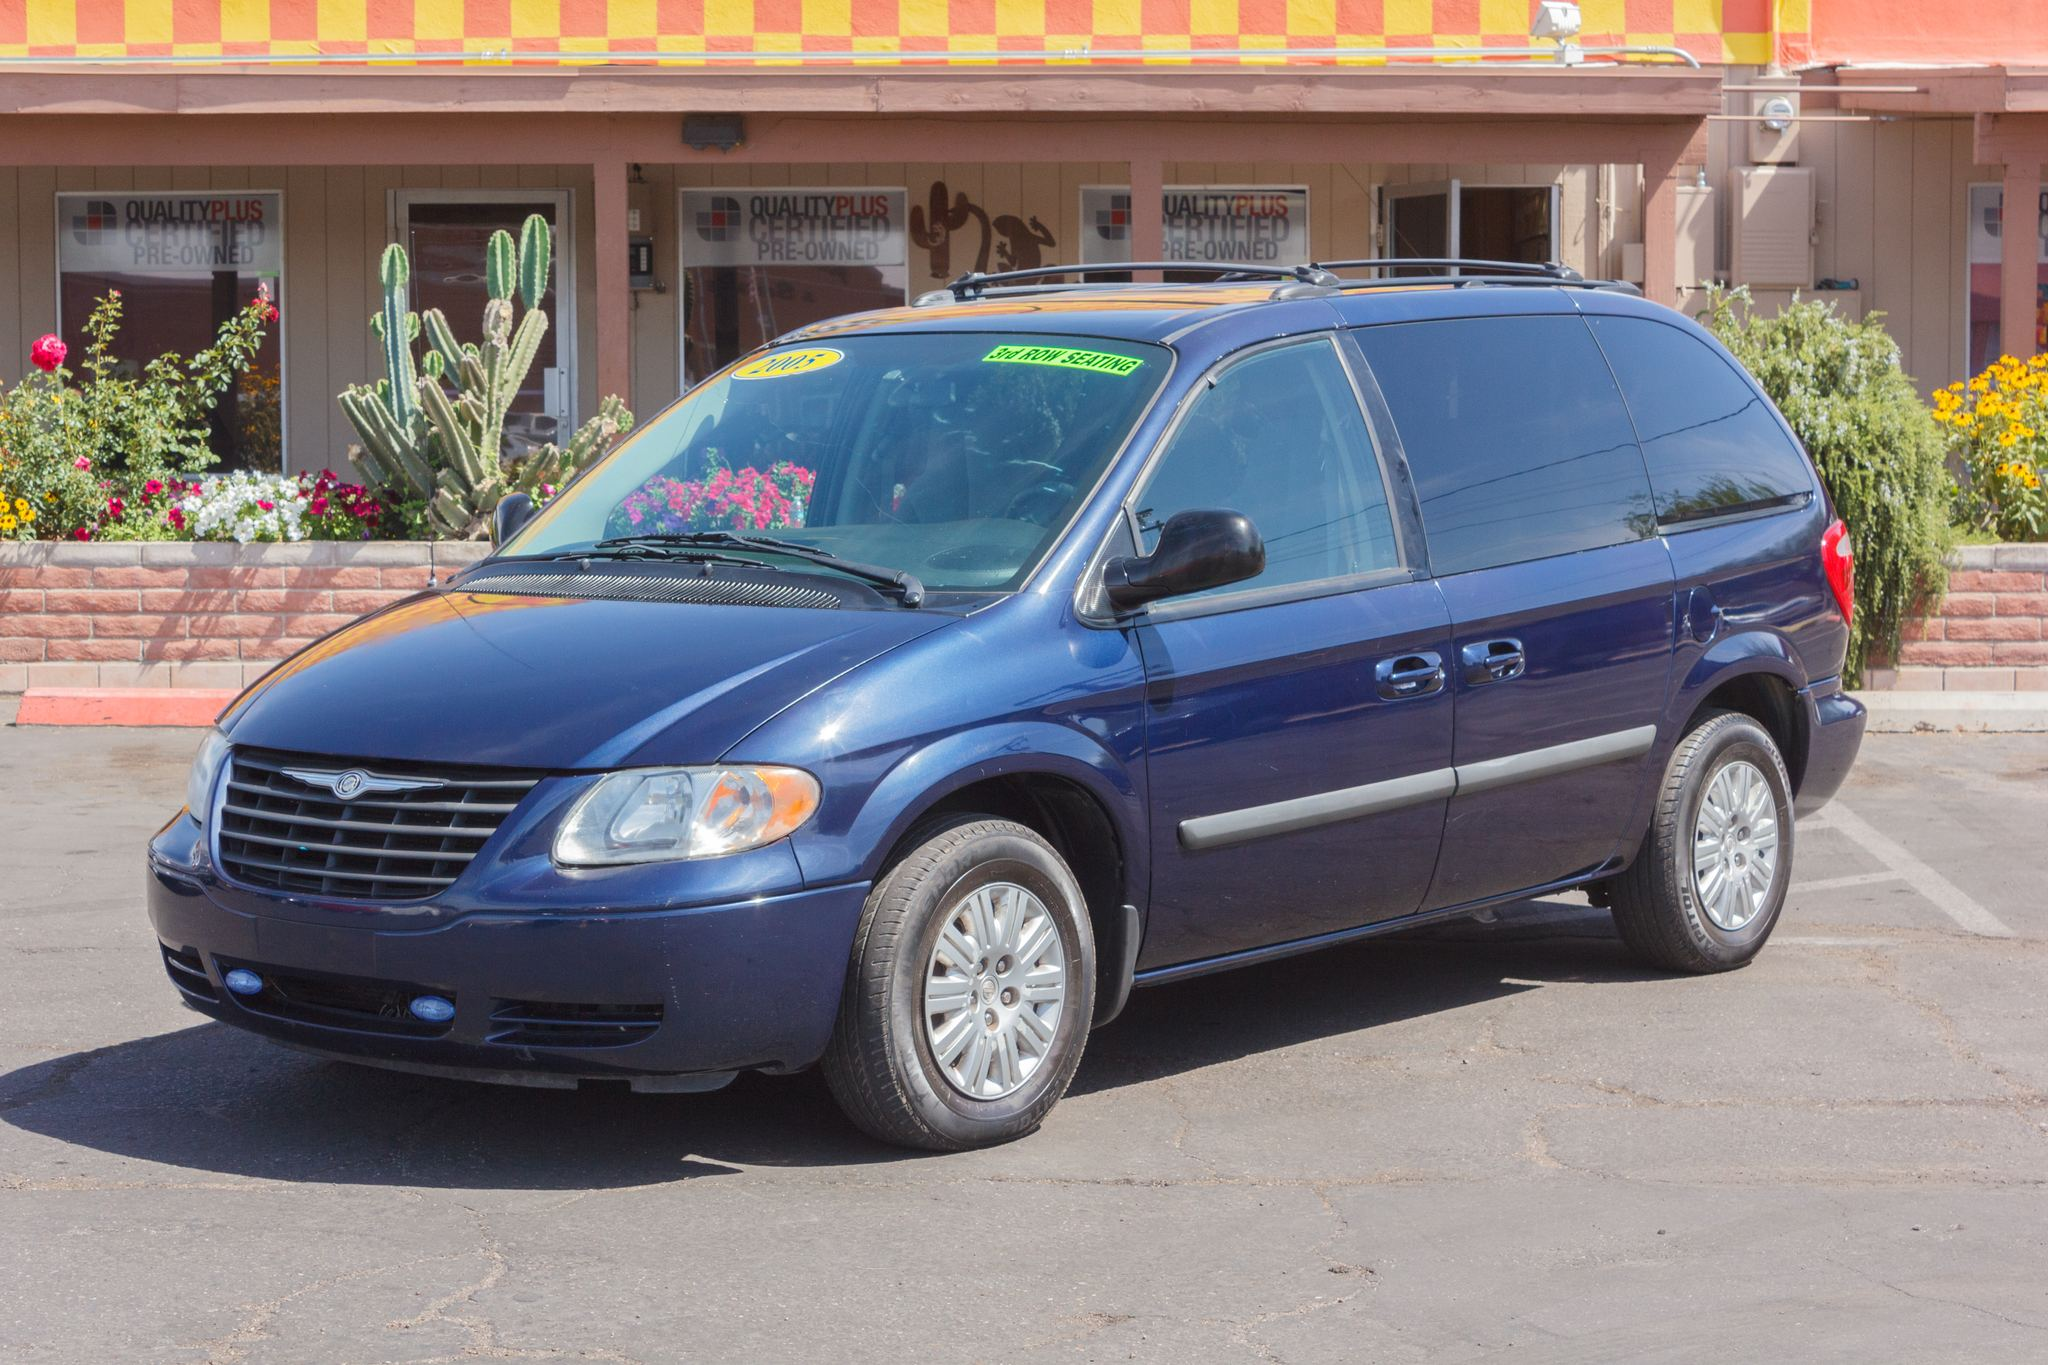 Photo of 2005 Chrysler Town & Country 4d Wagon Midnight Blue Pearlcoat